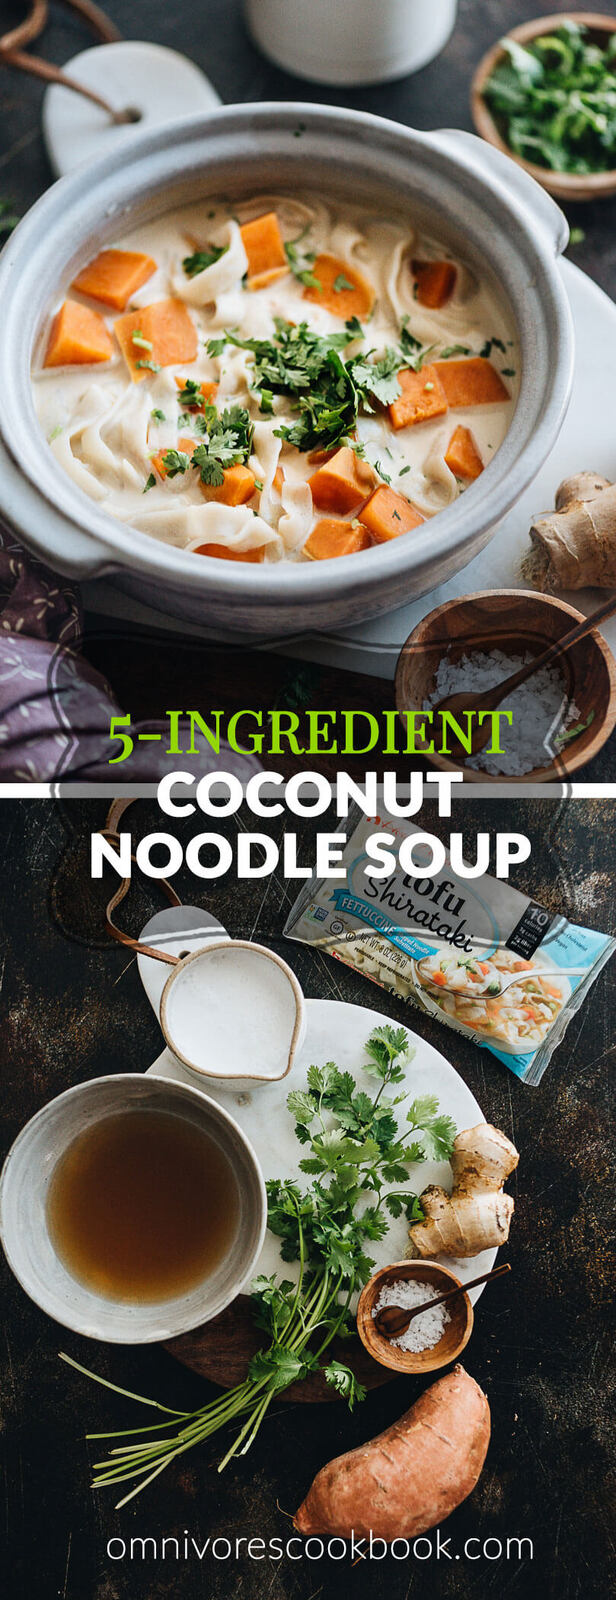 5-Ingredient Coconut Noodle Soup - A super hearty, delicious, and healthy noodle soup that requires just five ingredients and 10 minutes to make. Sound magical enough? {Vegetarian, Gluten-Free}